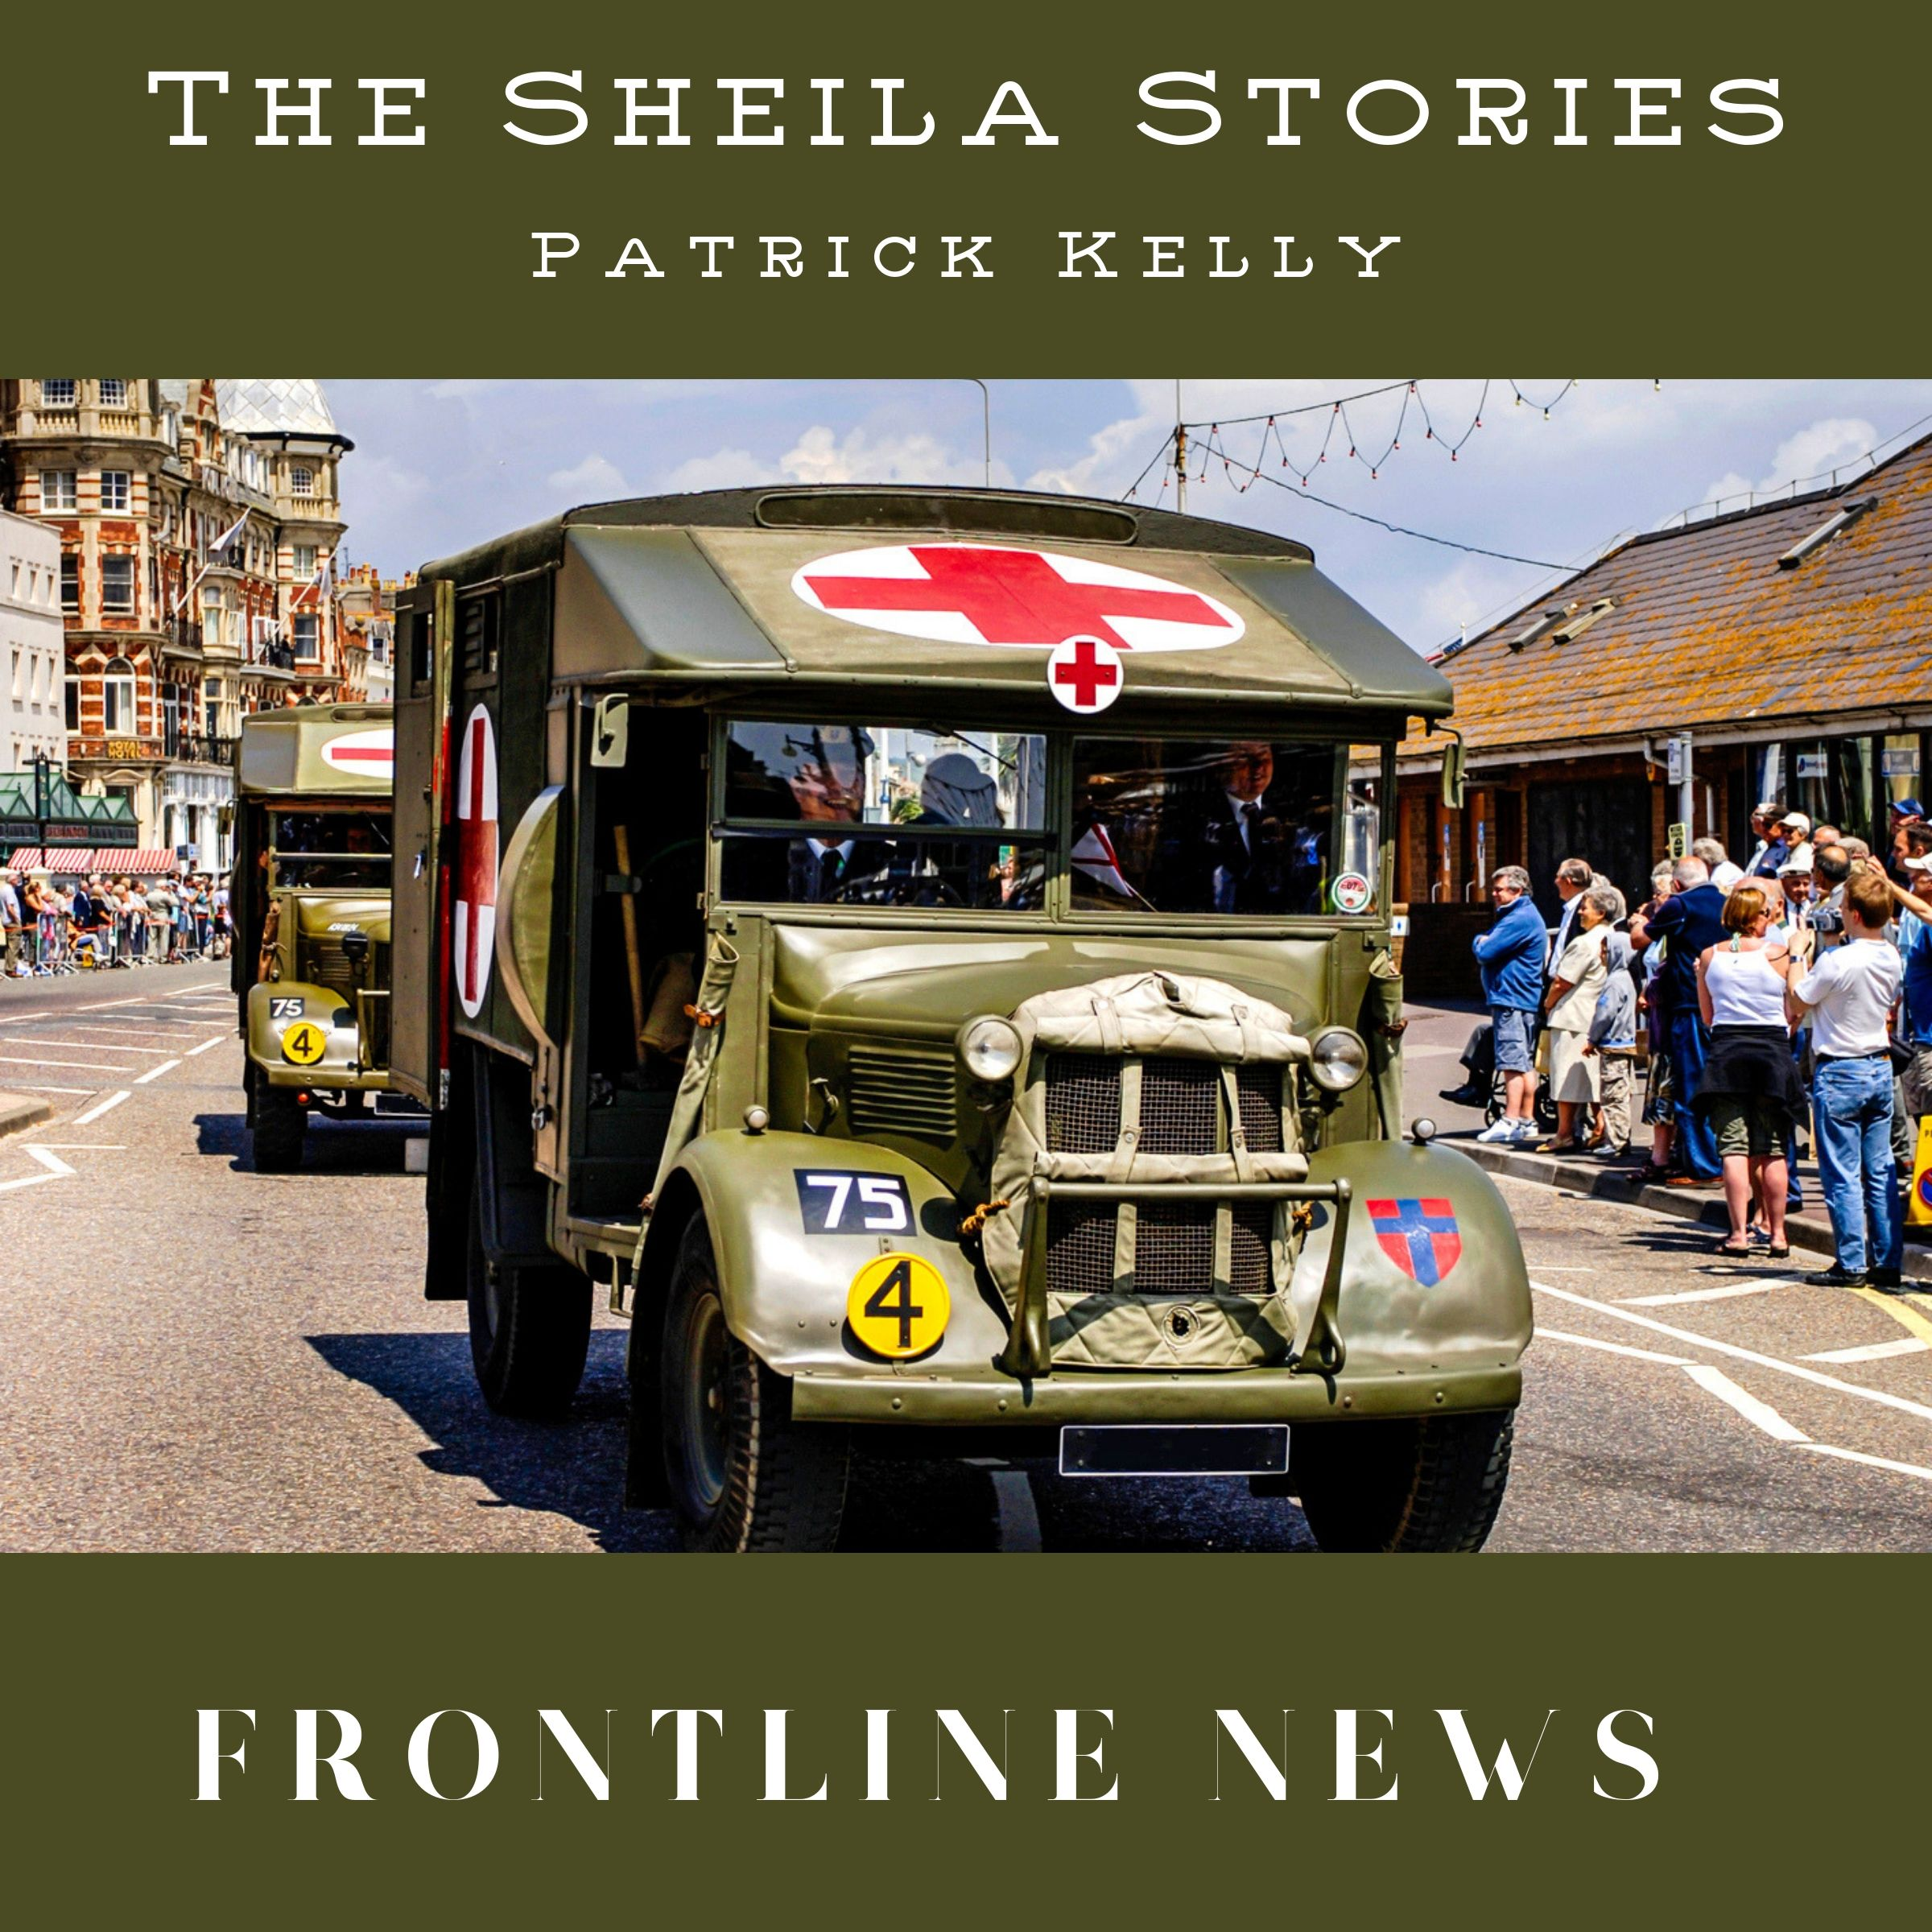 SS Cover EP10 Frontline News Small.jpg